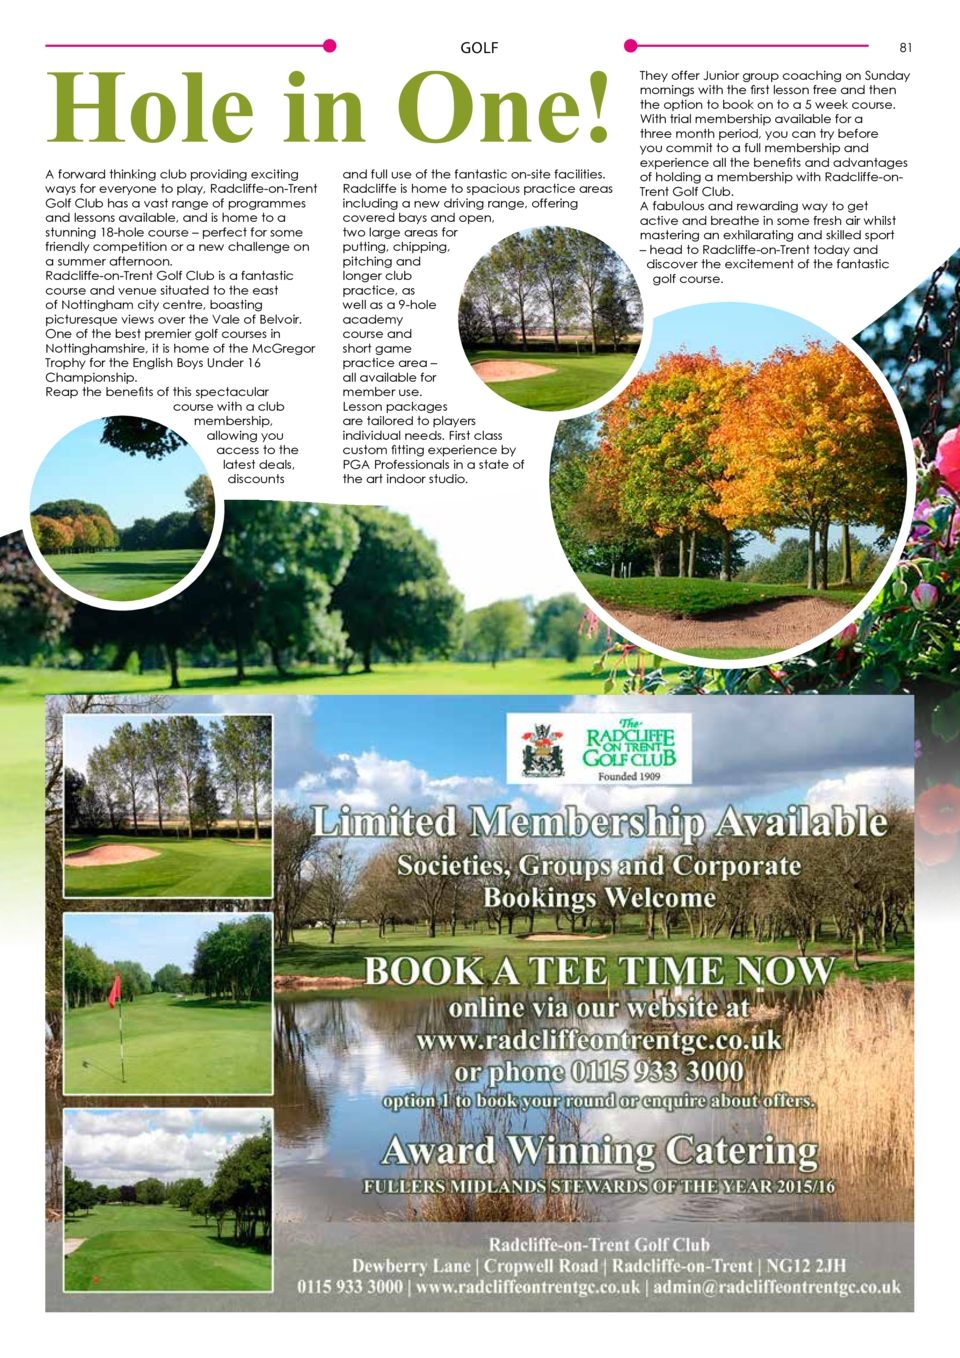 Hole in One  GOLF  A forward thinking club providing exciting ways for everyone to play, Radcliffe-on-Trent Golf Club has ...